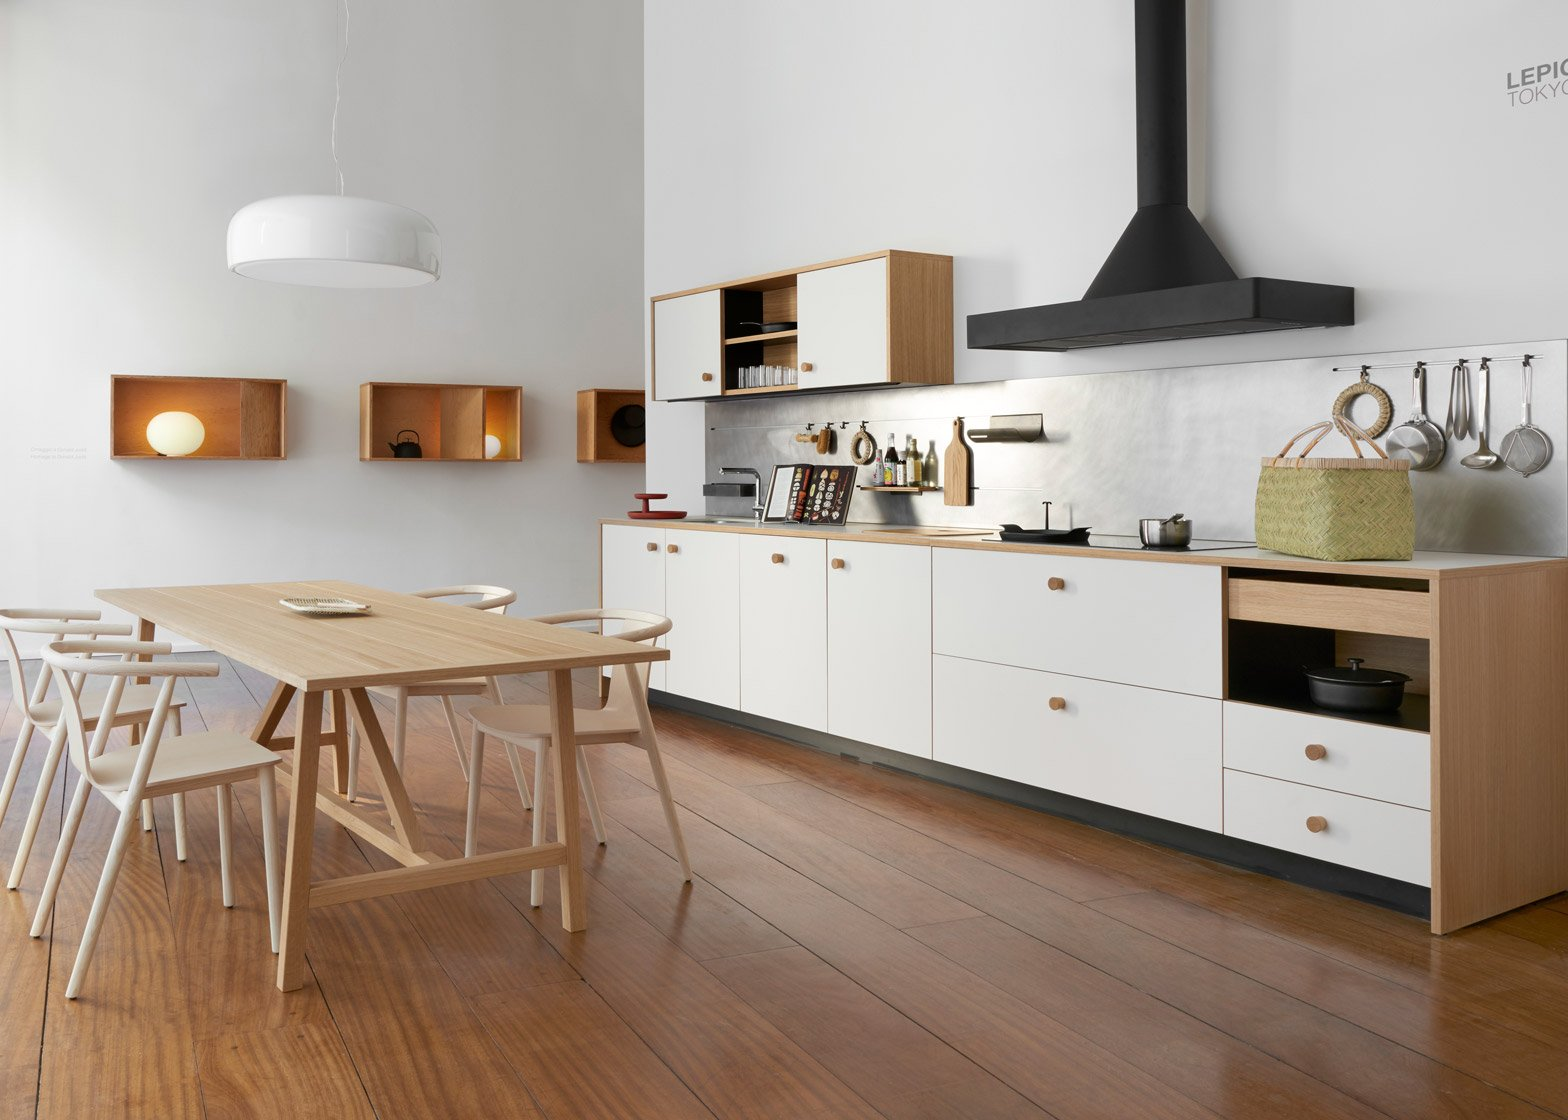 13 Of 13; Lepic Kitchen By Jasper Morrison